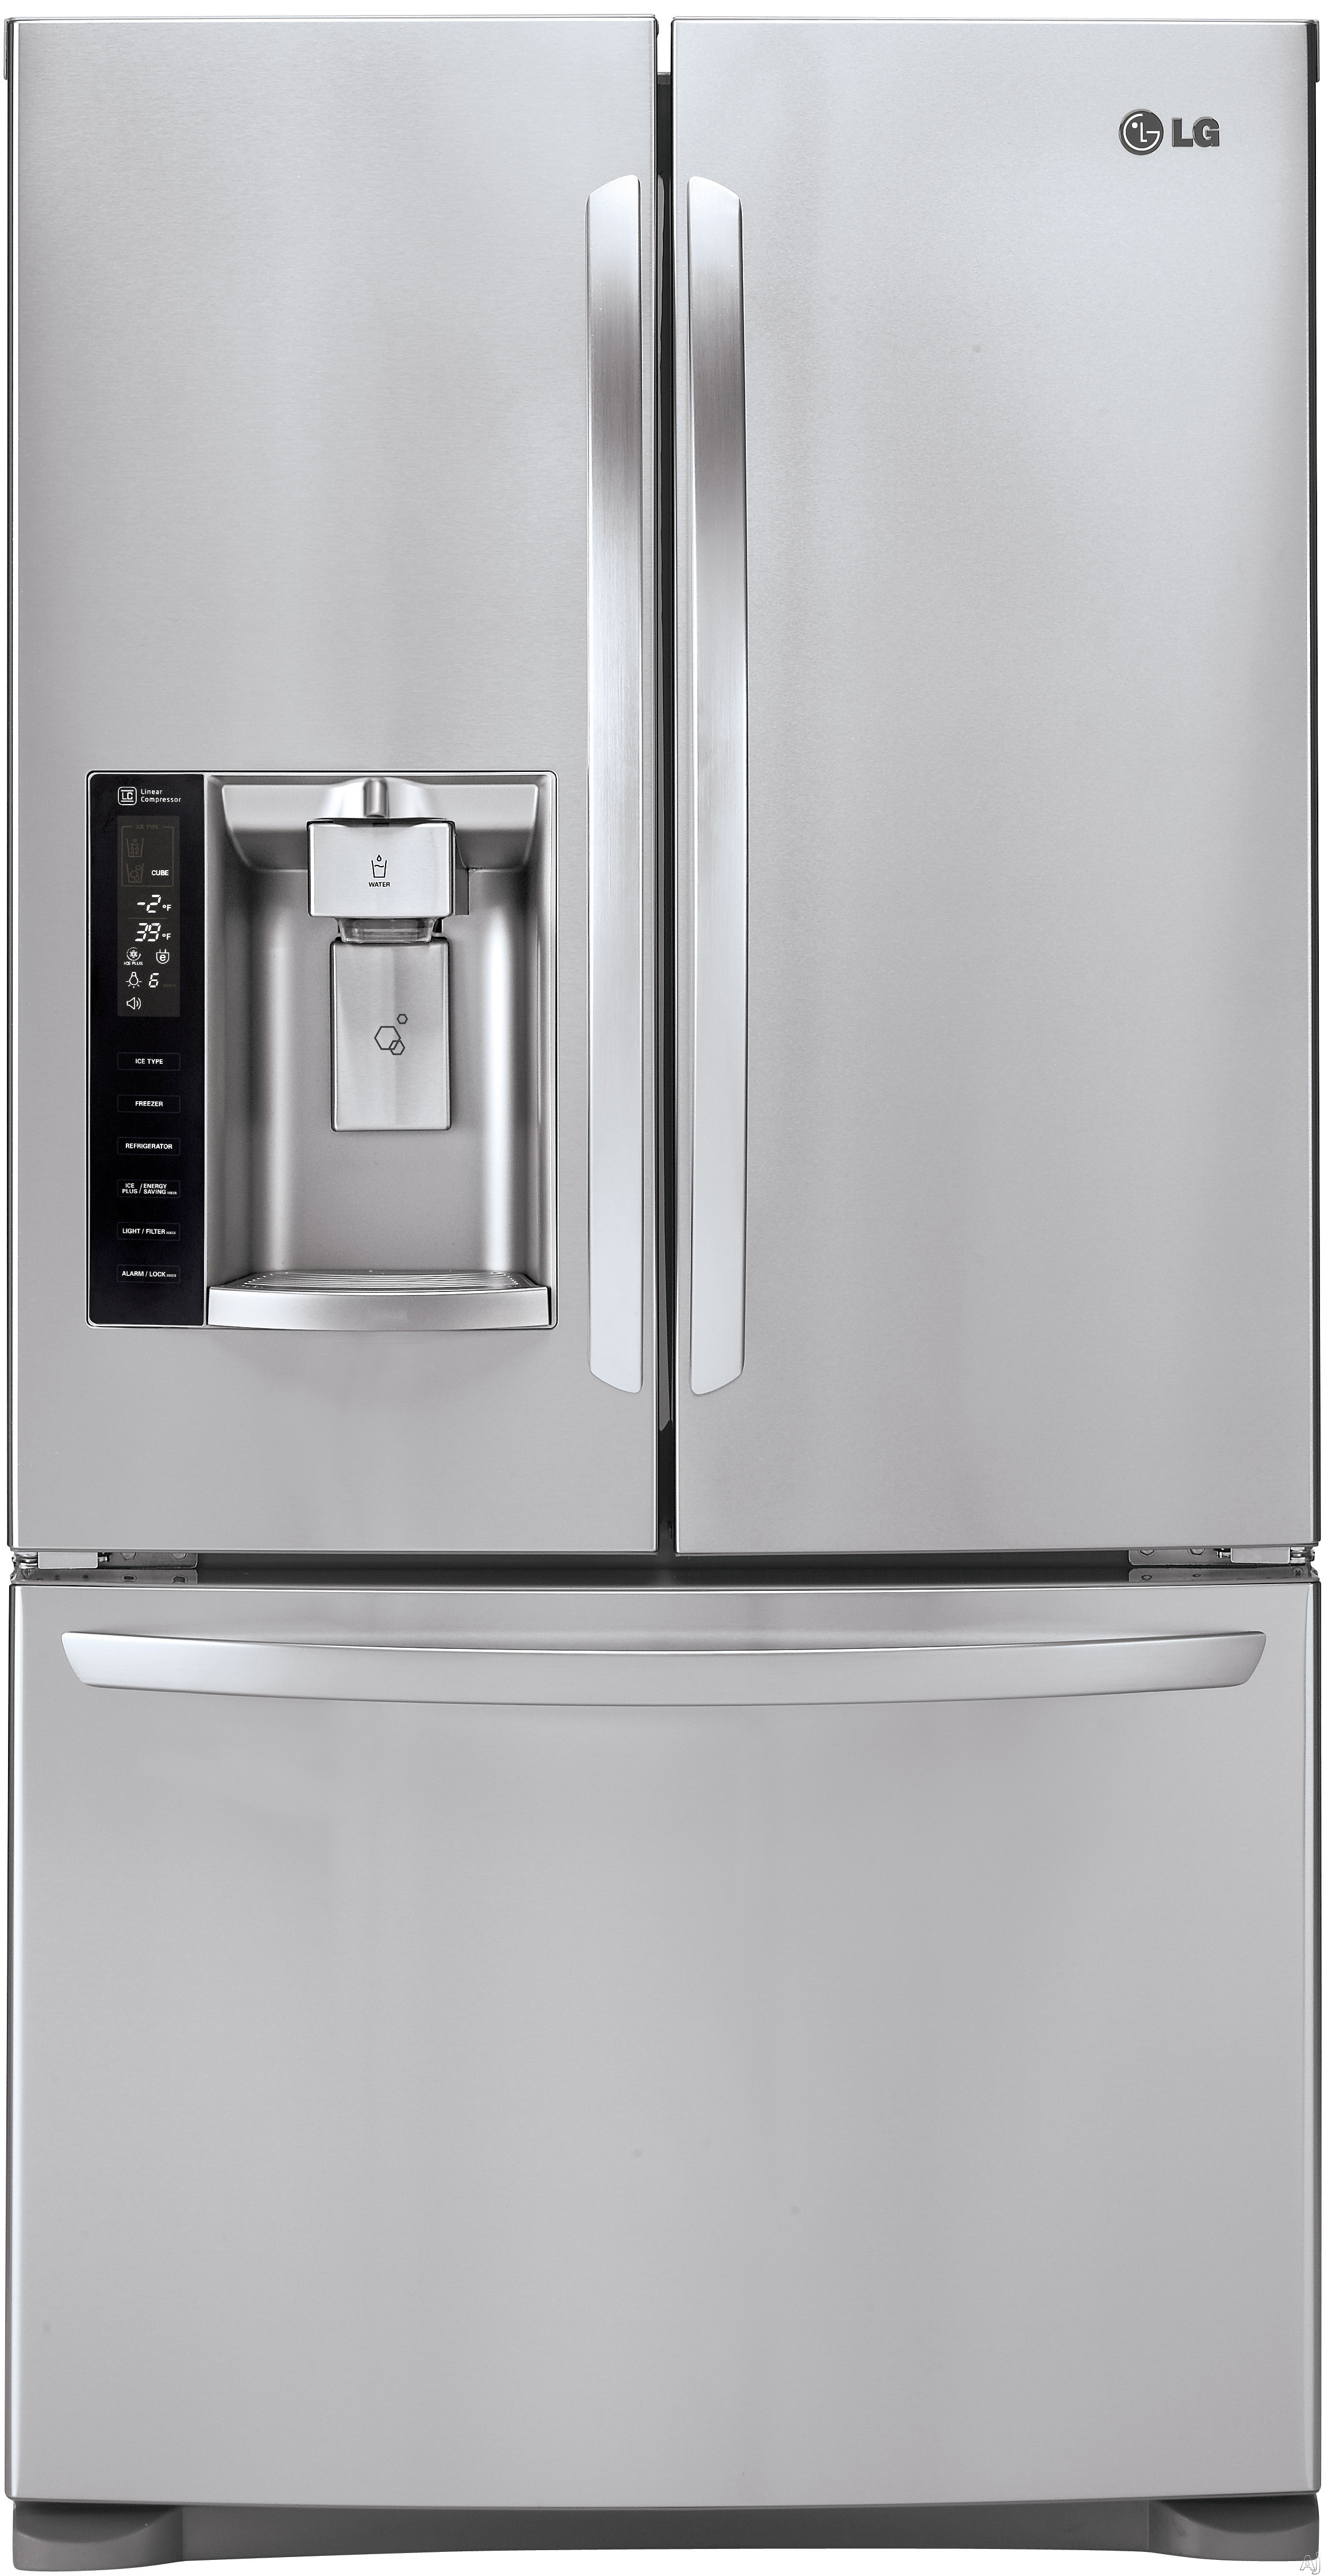 LG LFX28968ST 36 Inch French Door Refrigerator with Slim SpacePlus® Ice System, SpillProof™ Glass Shelving, Linear Compressor, Air and Water Filters, Humidity Controlled Crisper Drawers, Gallon Door Storage, ENERGY STAR®, 26.8 cu. ft. Capacity and Fr